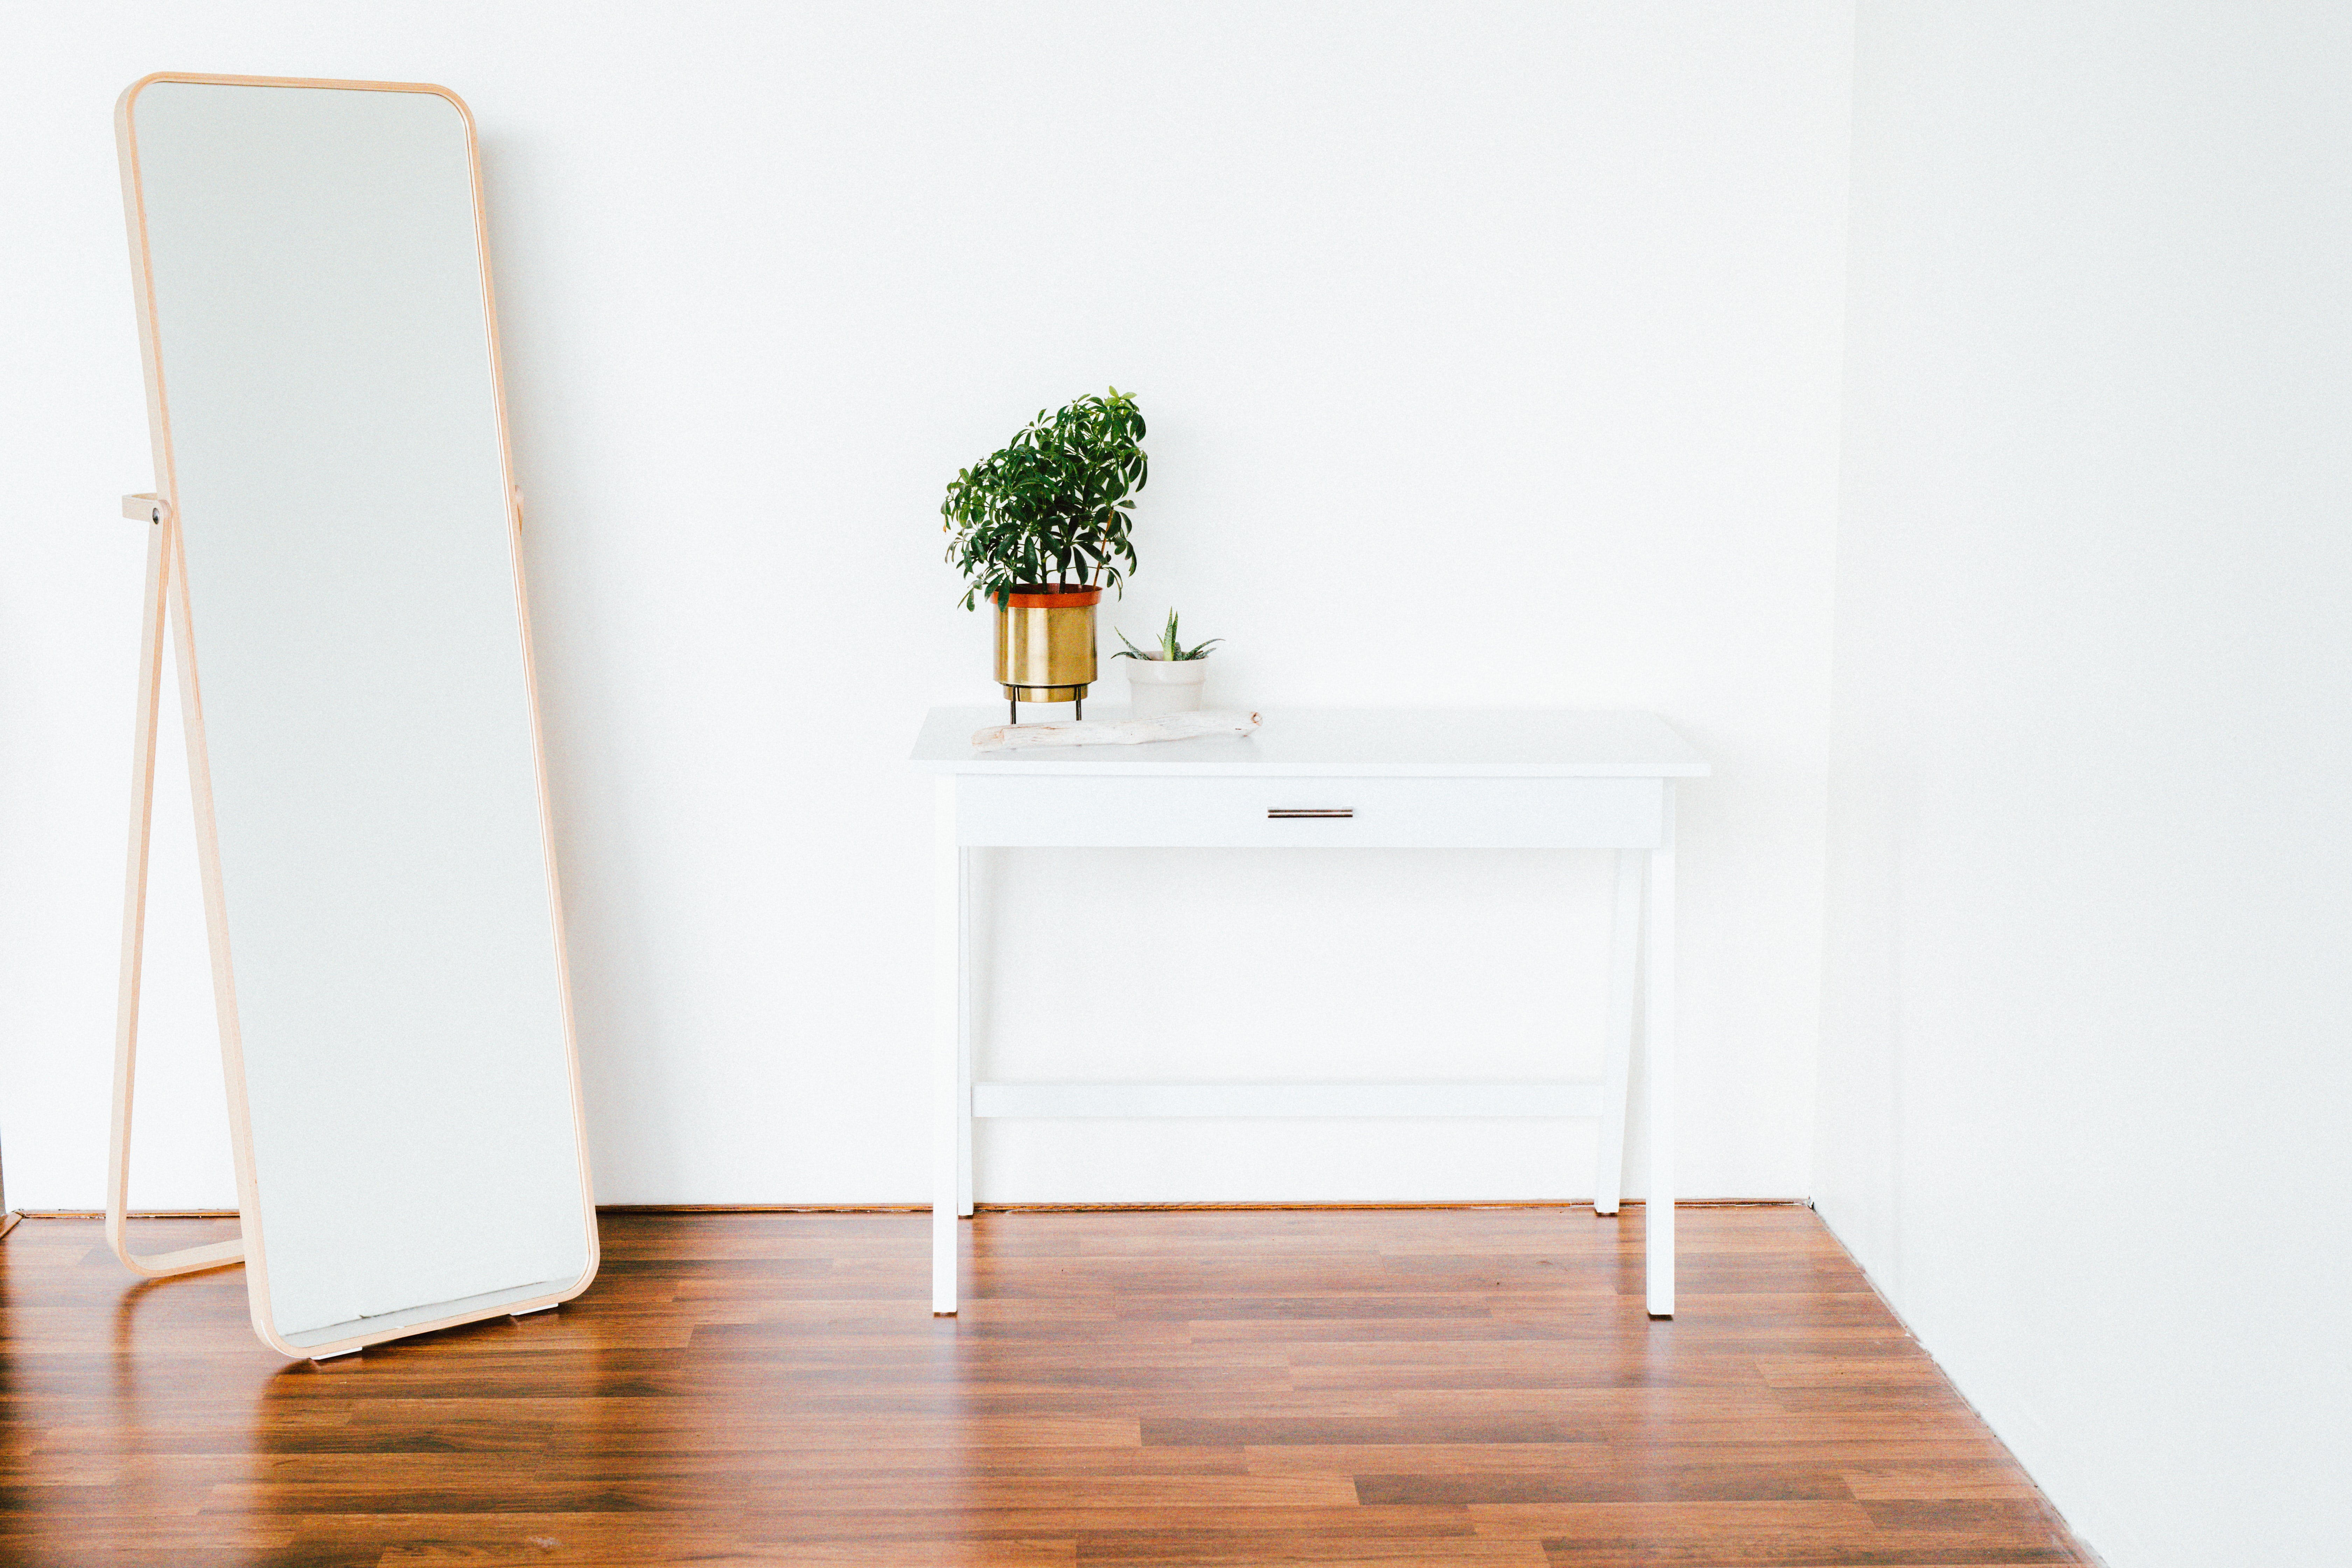 White room interior with hardwood floor with a desk, plant, and full-length mirror